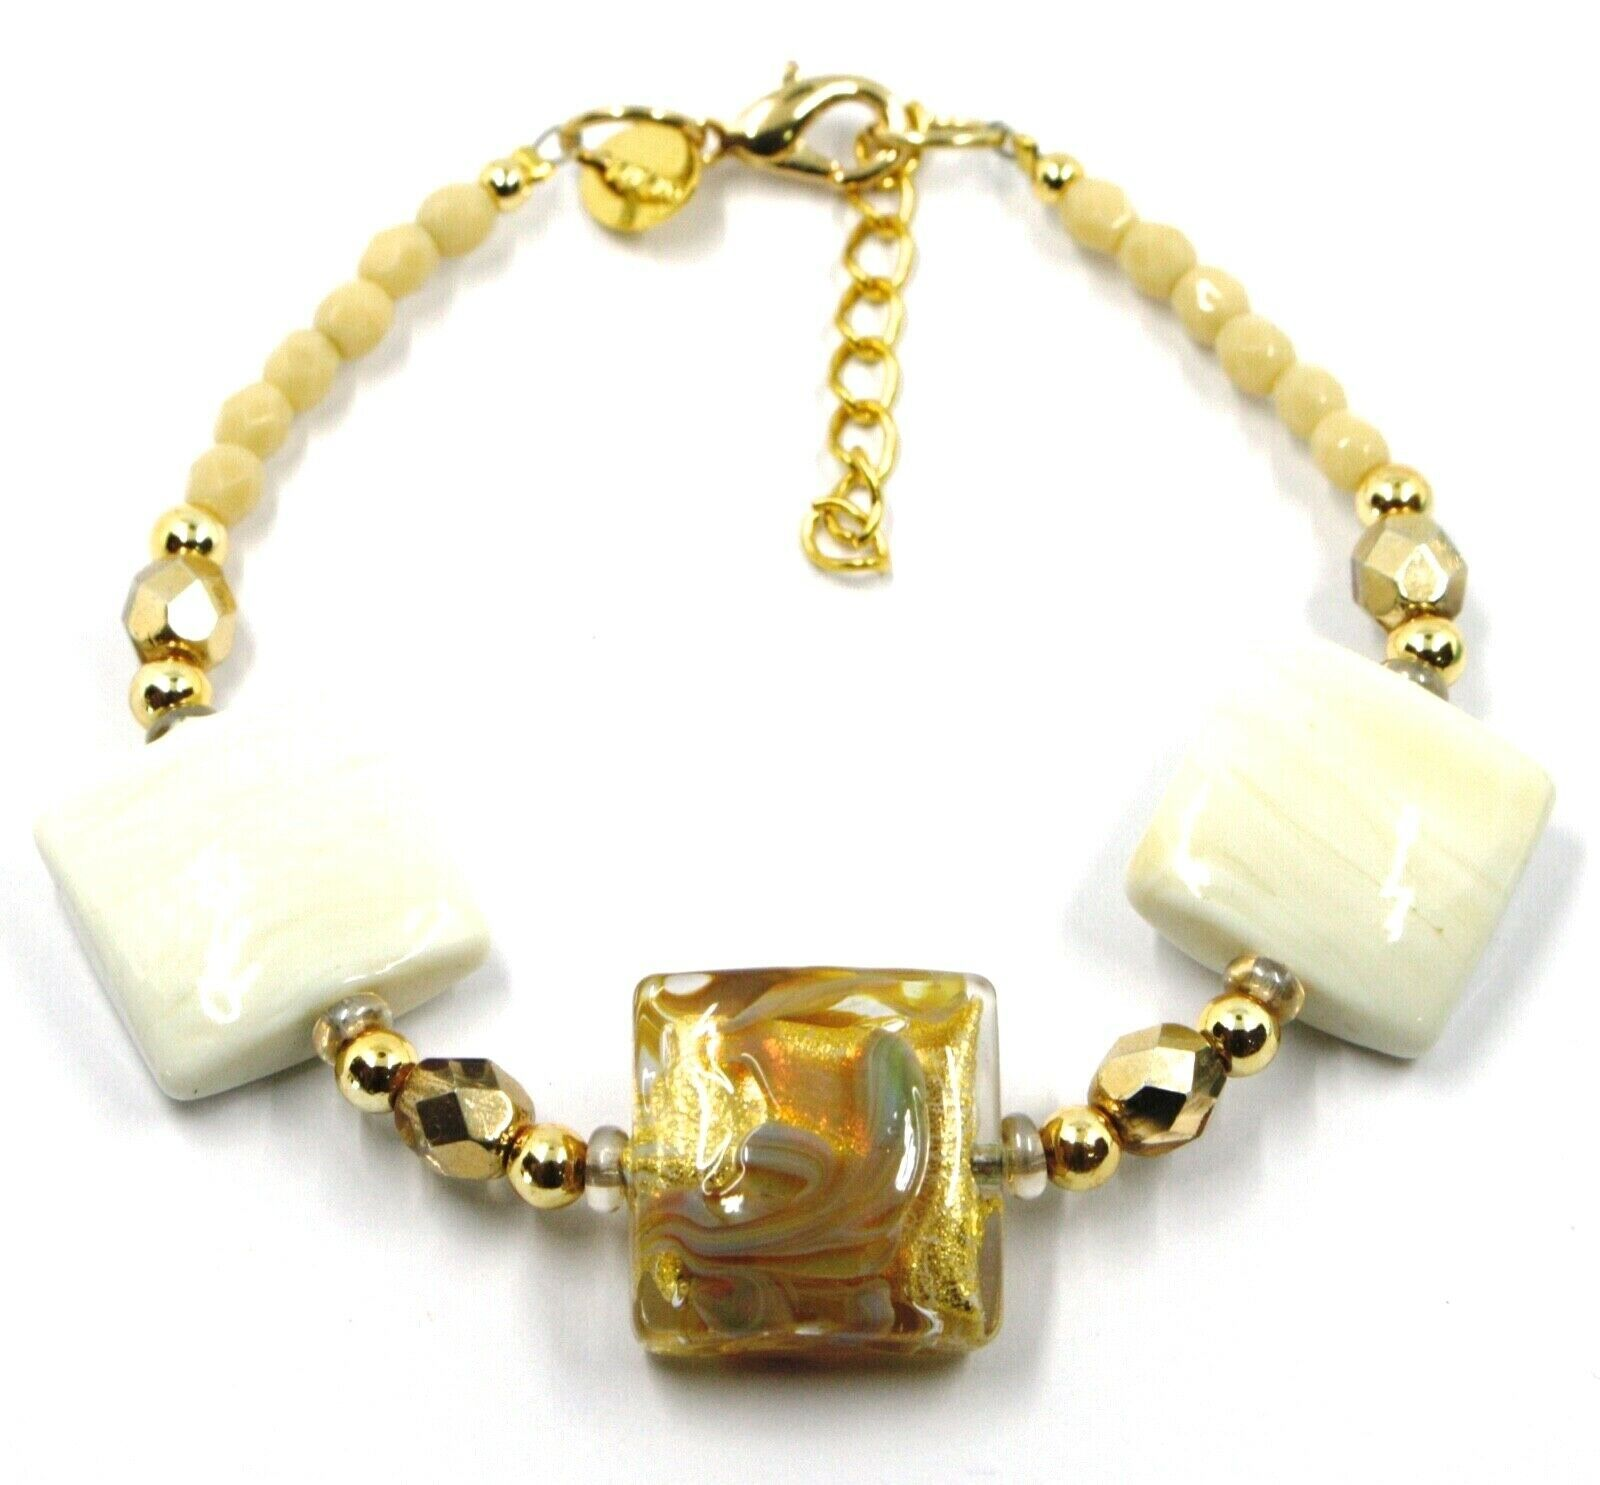 BRACELET WITH WHITE MURANO SQUARE GLASS & GOLD LEAF, MADE IN ITALY, 19cm, 7.5""